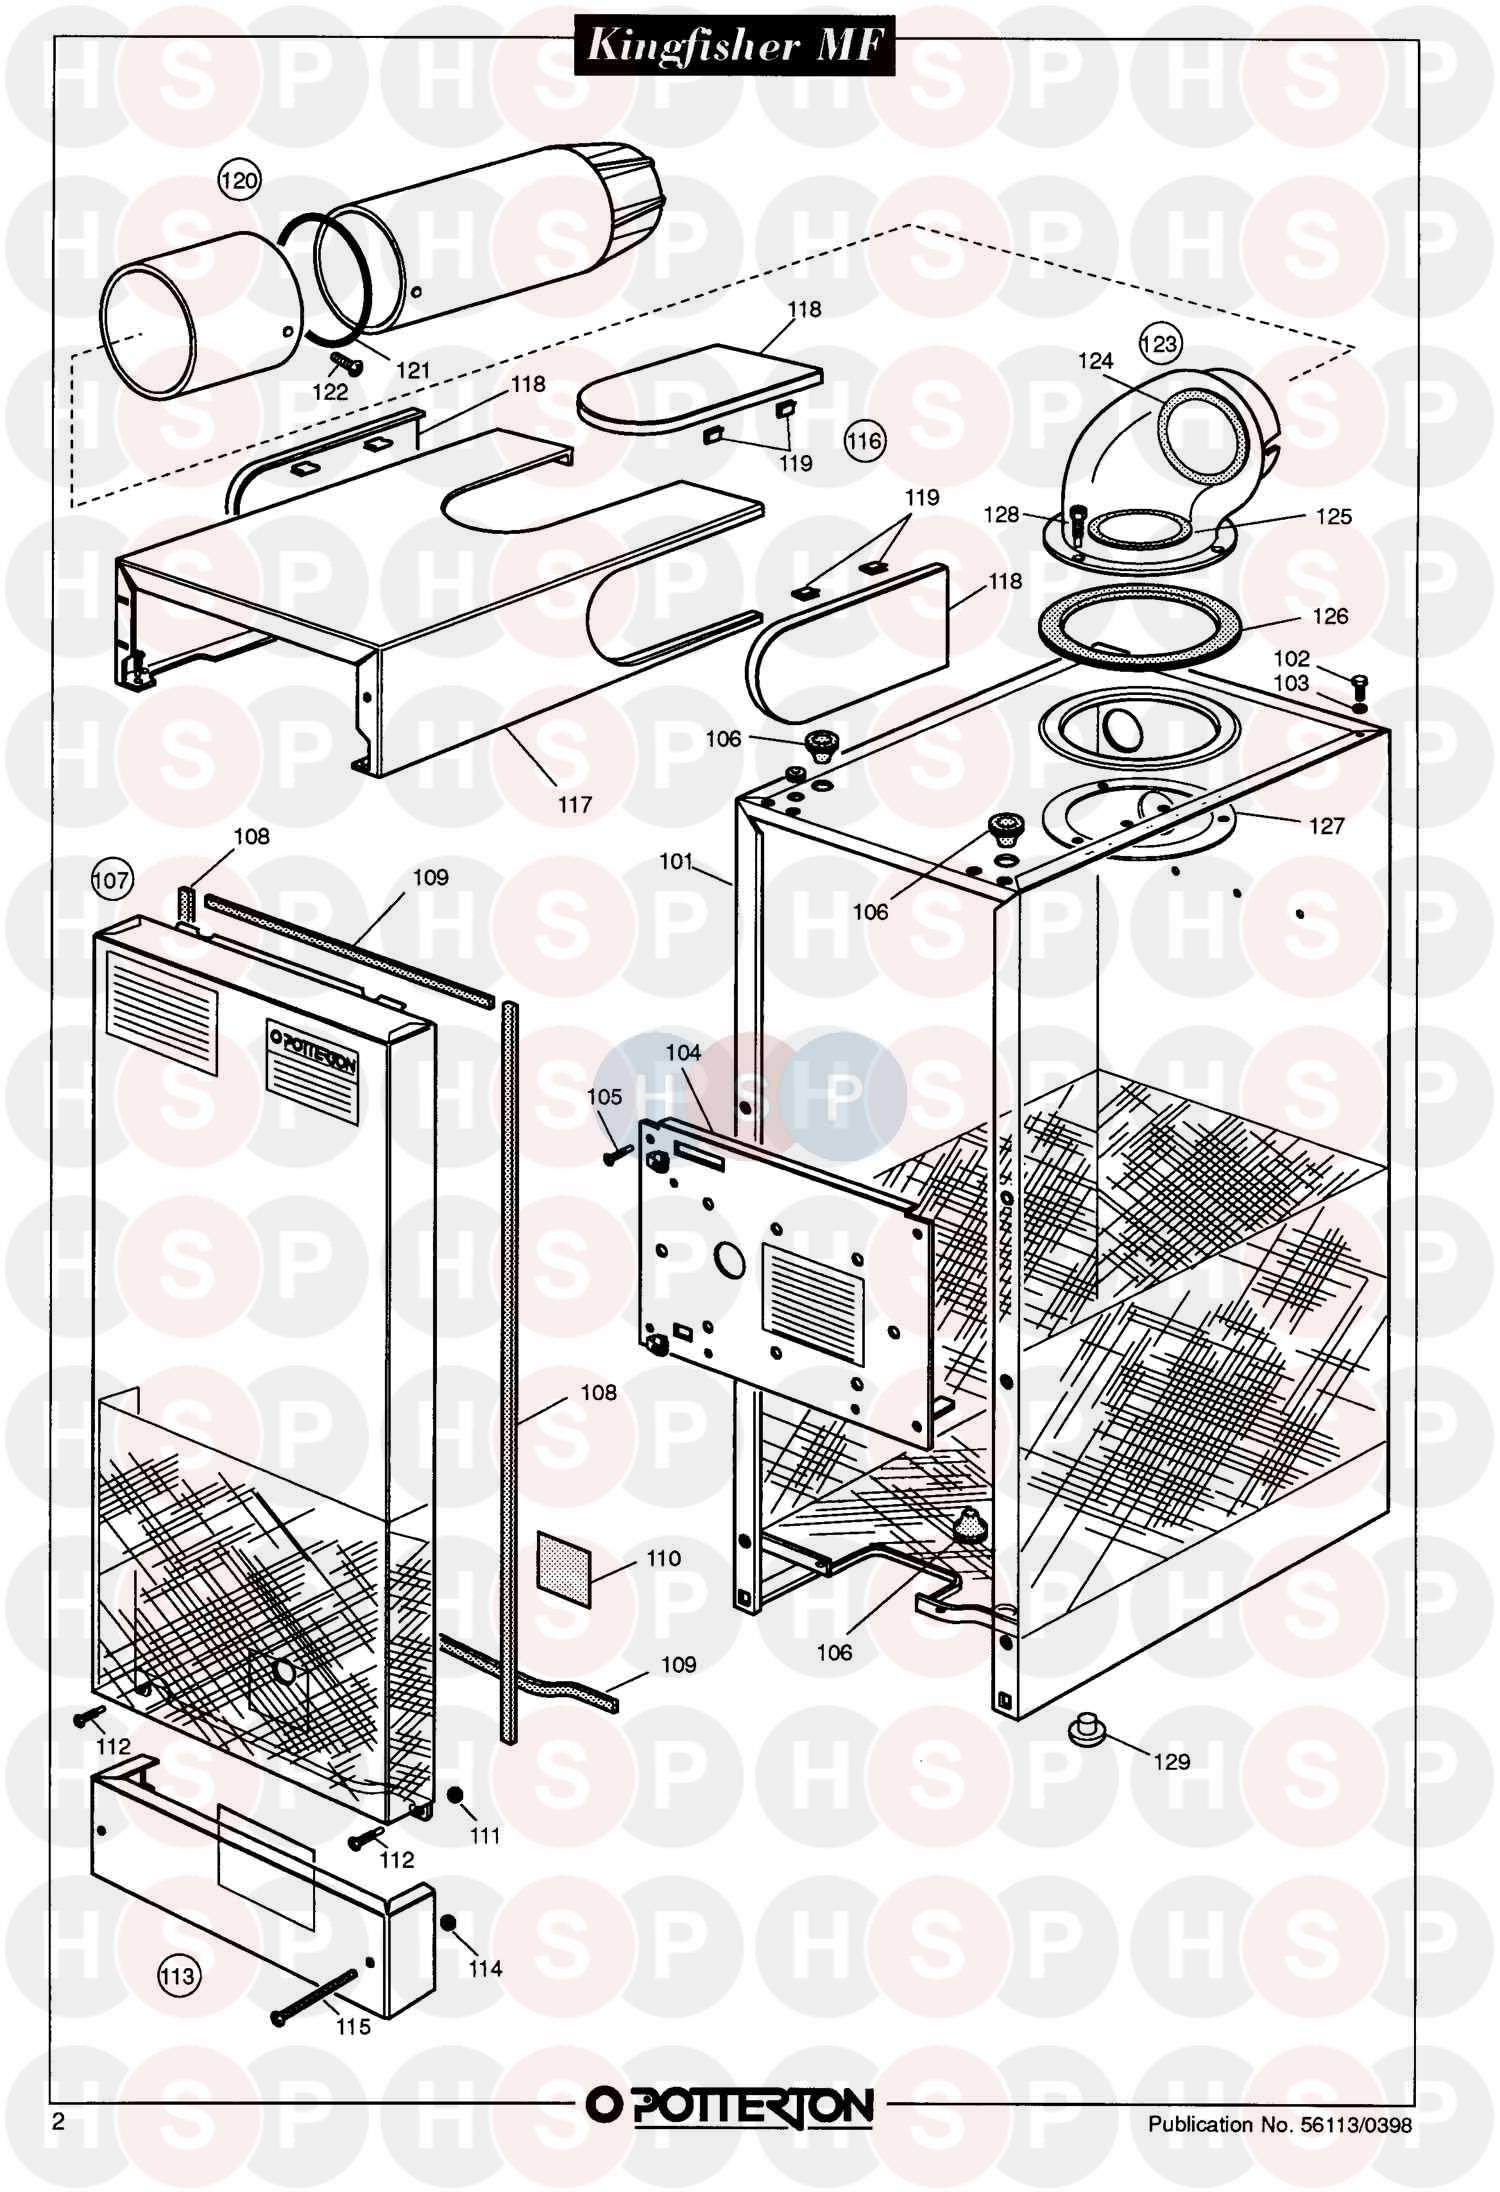 potterton kingfisher mf rs80 appliance diagram  assembly 1